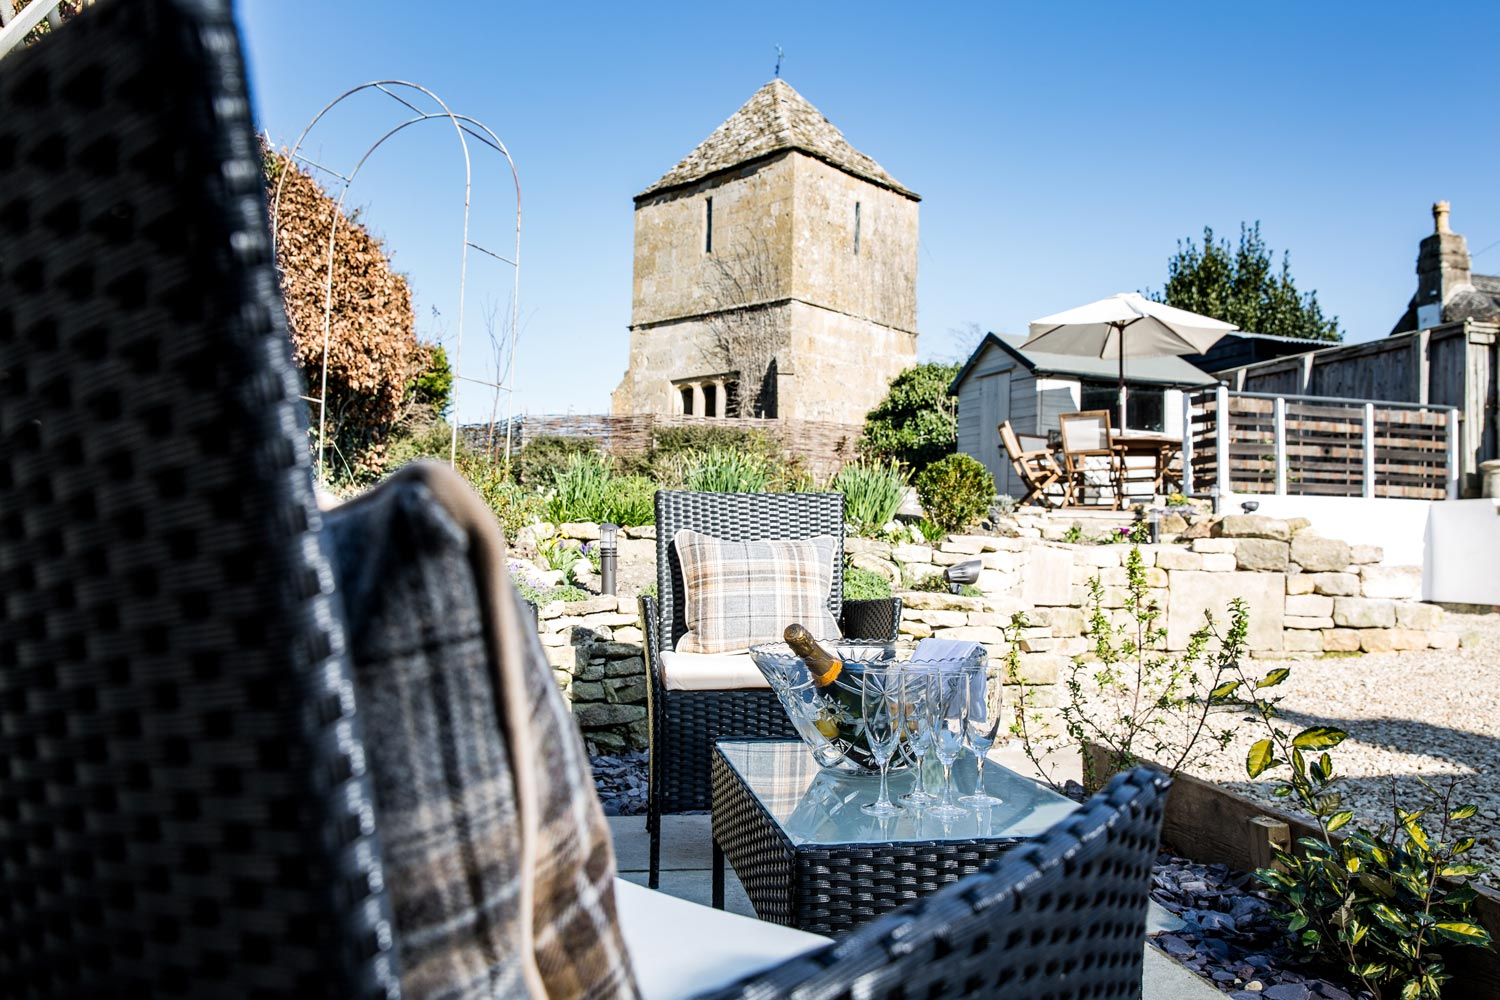 Relax in the glow of the Gretton Church Tower